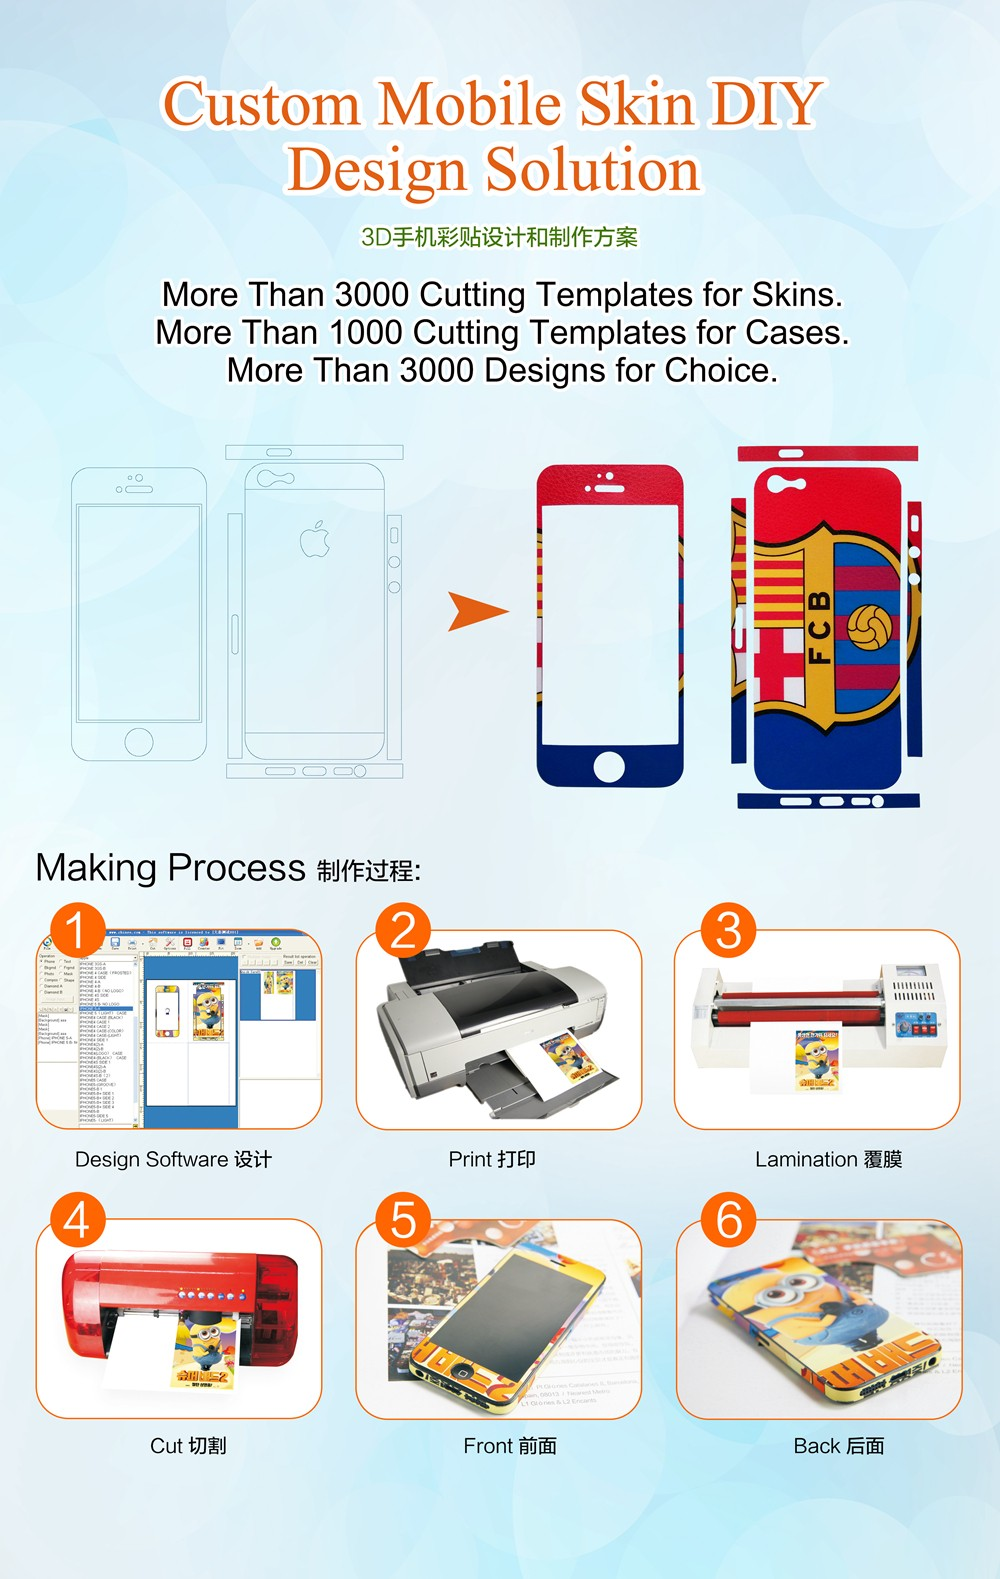 3D mobile skin sticker cutter software for home business ideas